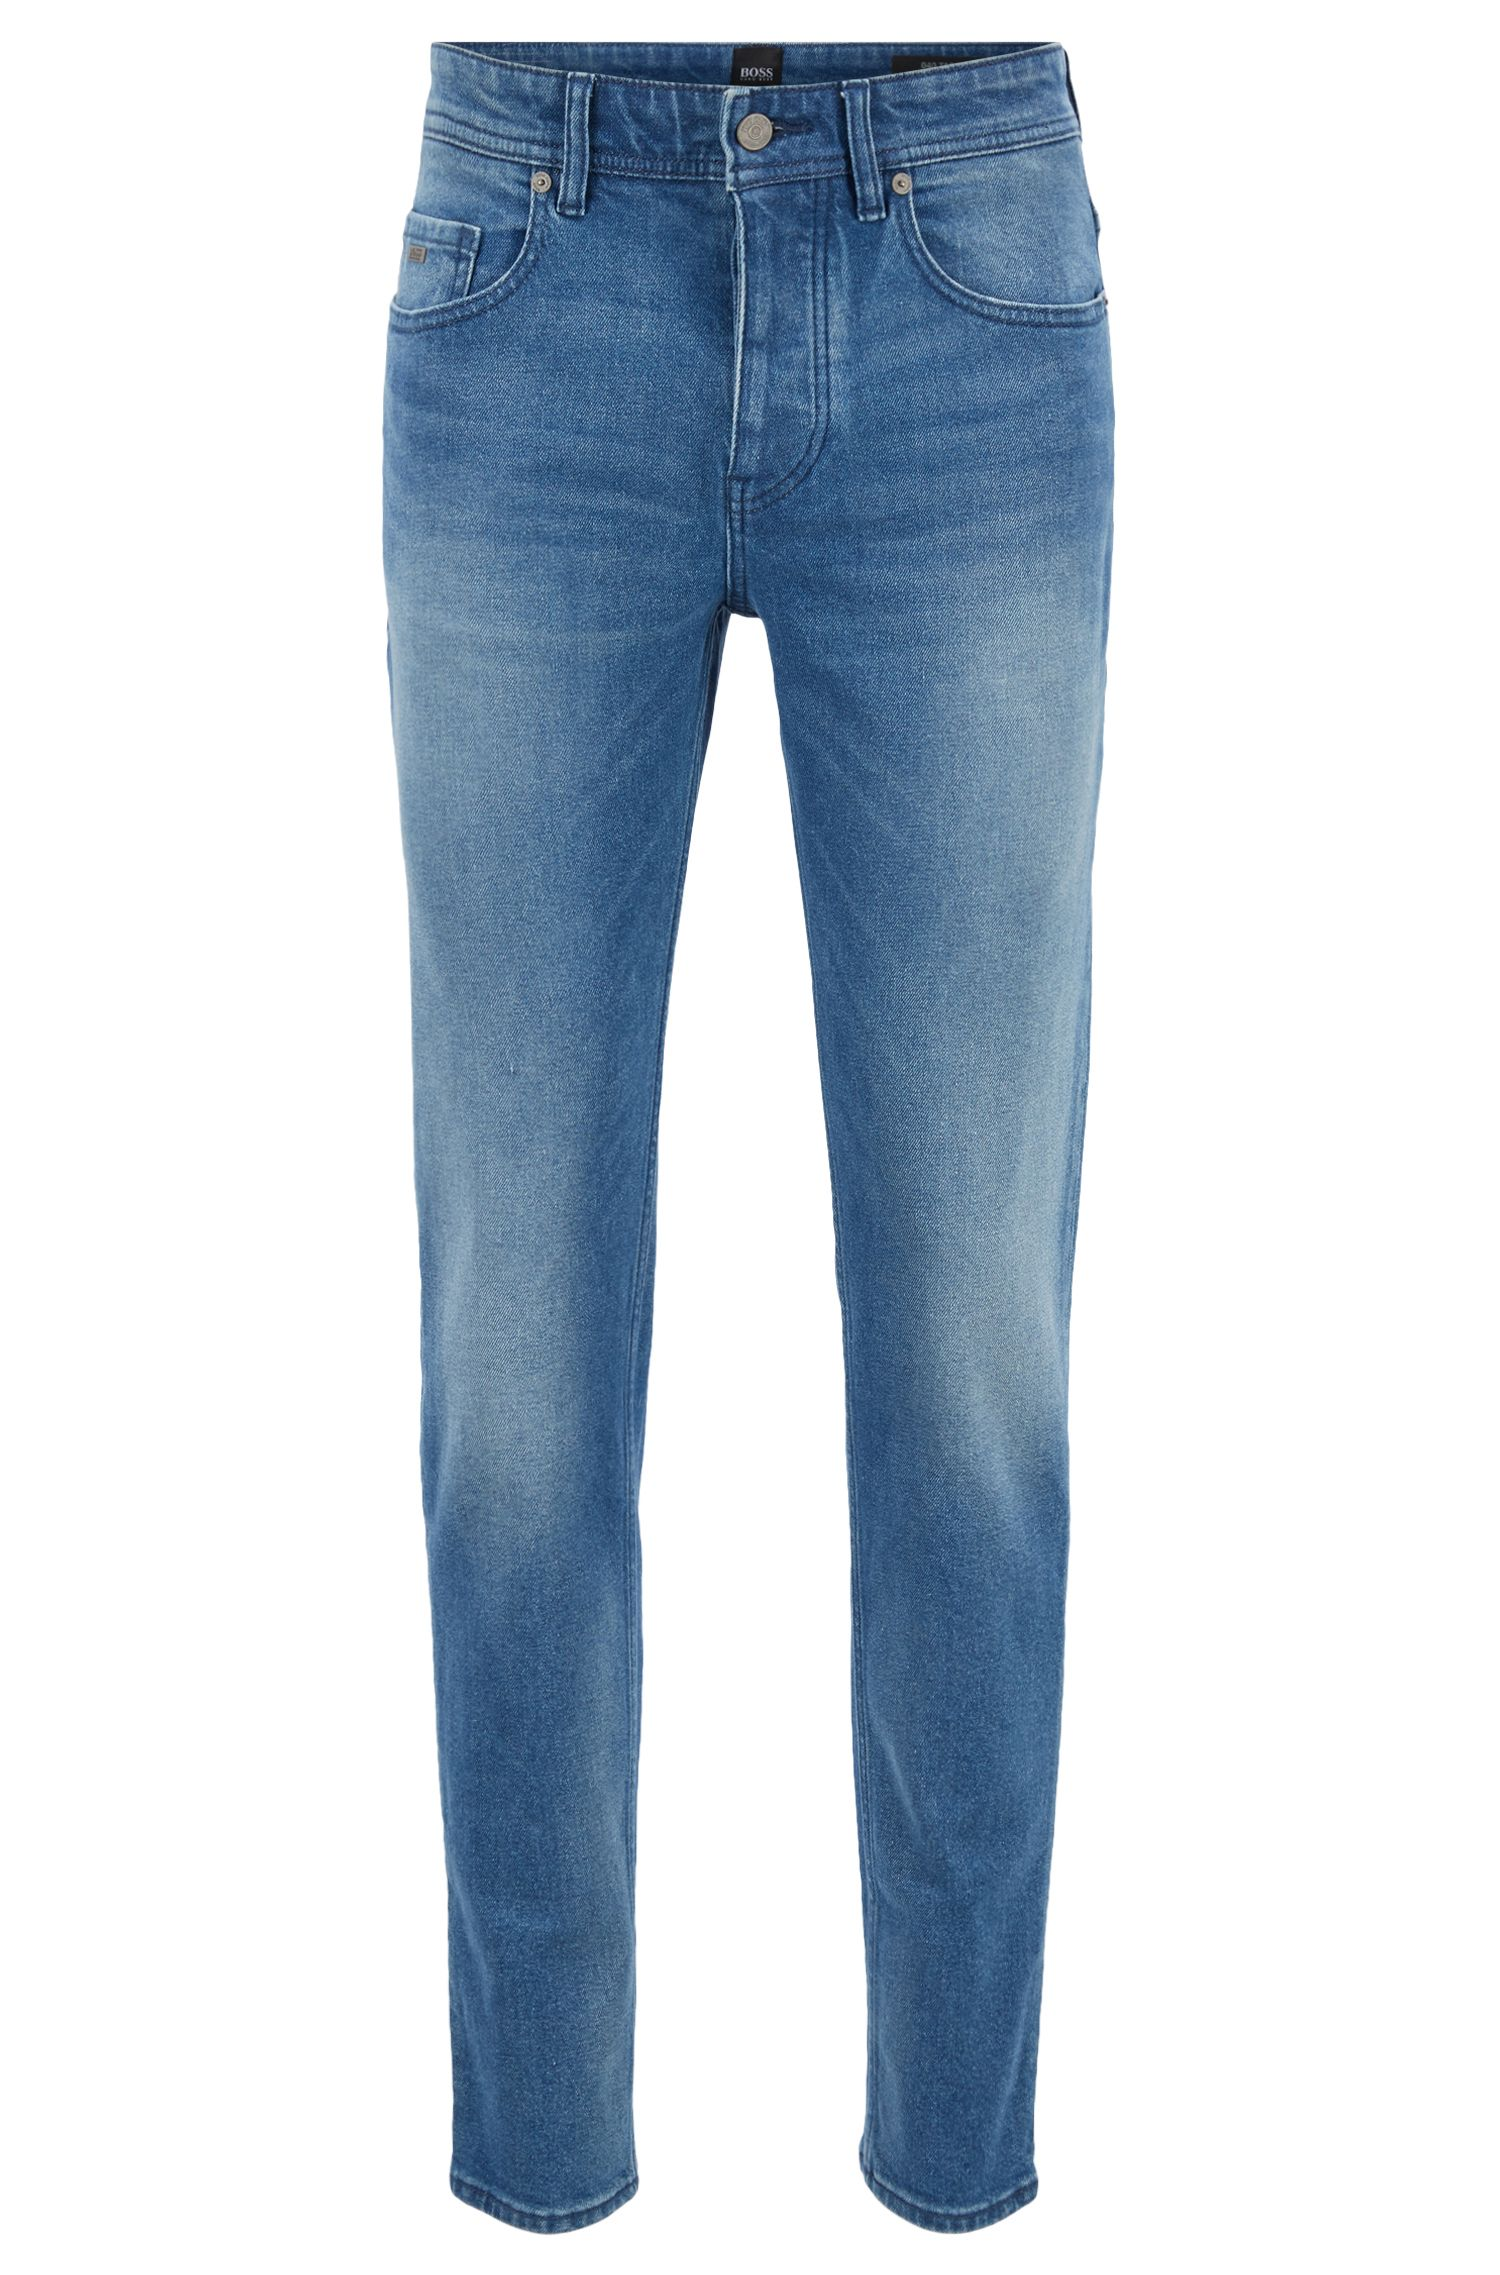 Tapered-Fit Jeans im Vintage-Look aus komfortablem Stretch-Denim, Blau